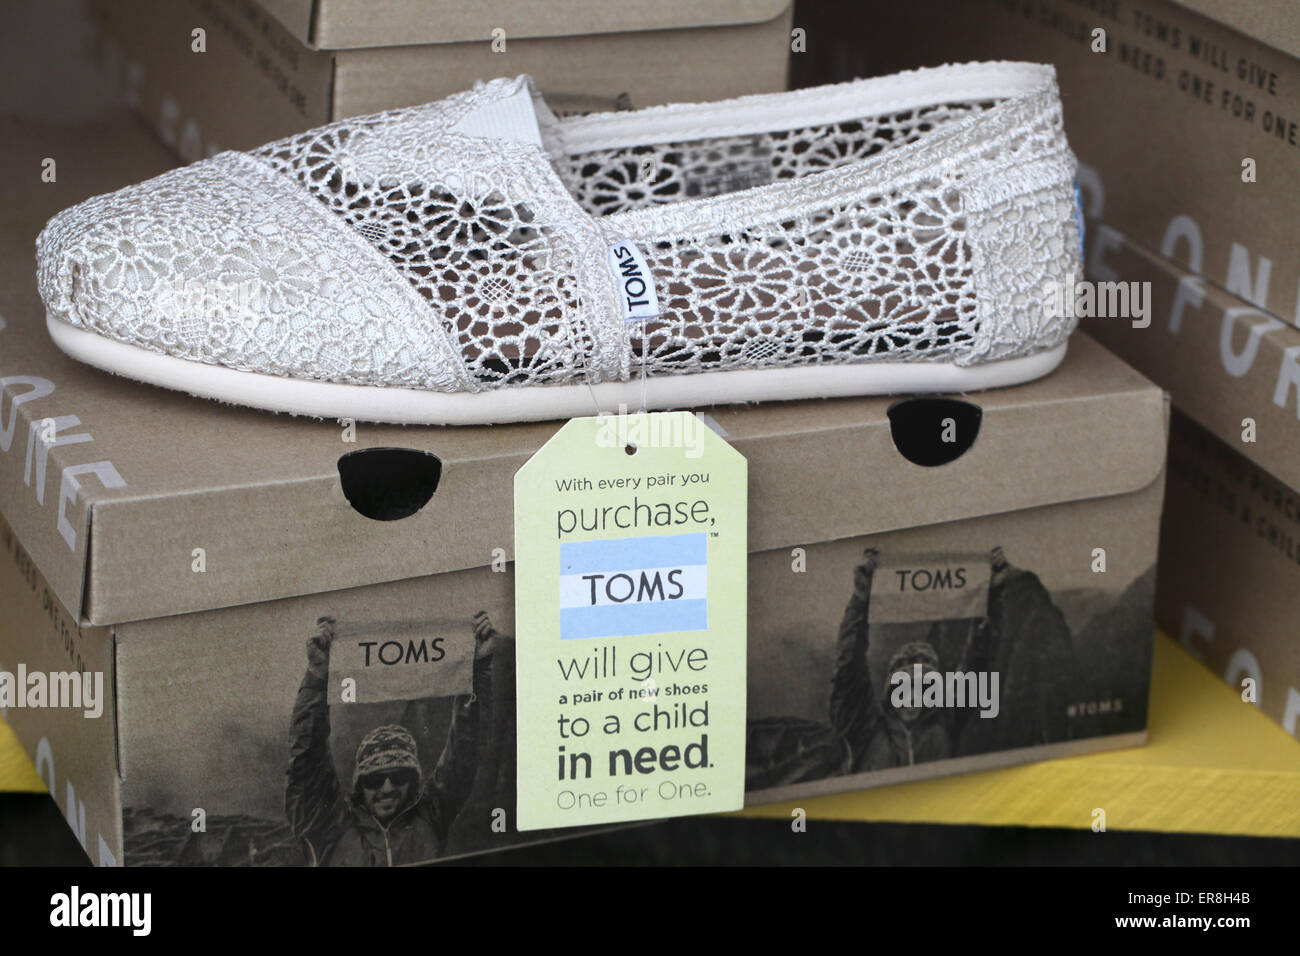 TOMS footwear for sale in a shop in Wirksworth - Stock Image